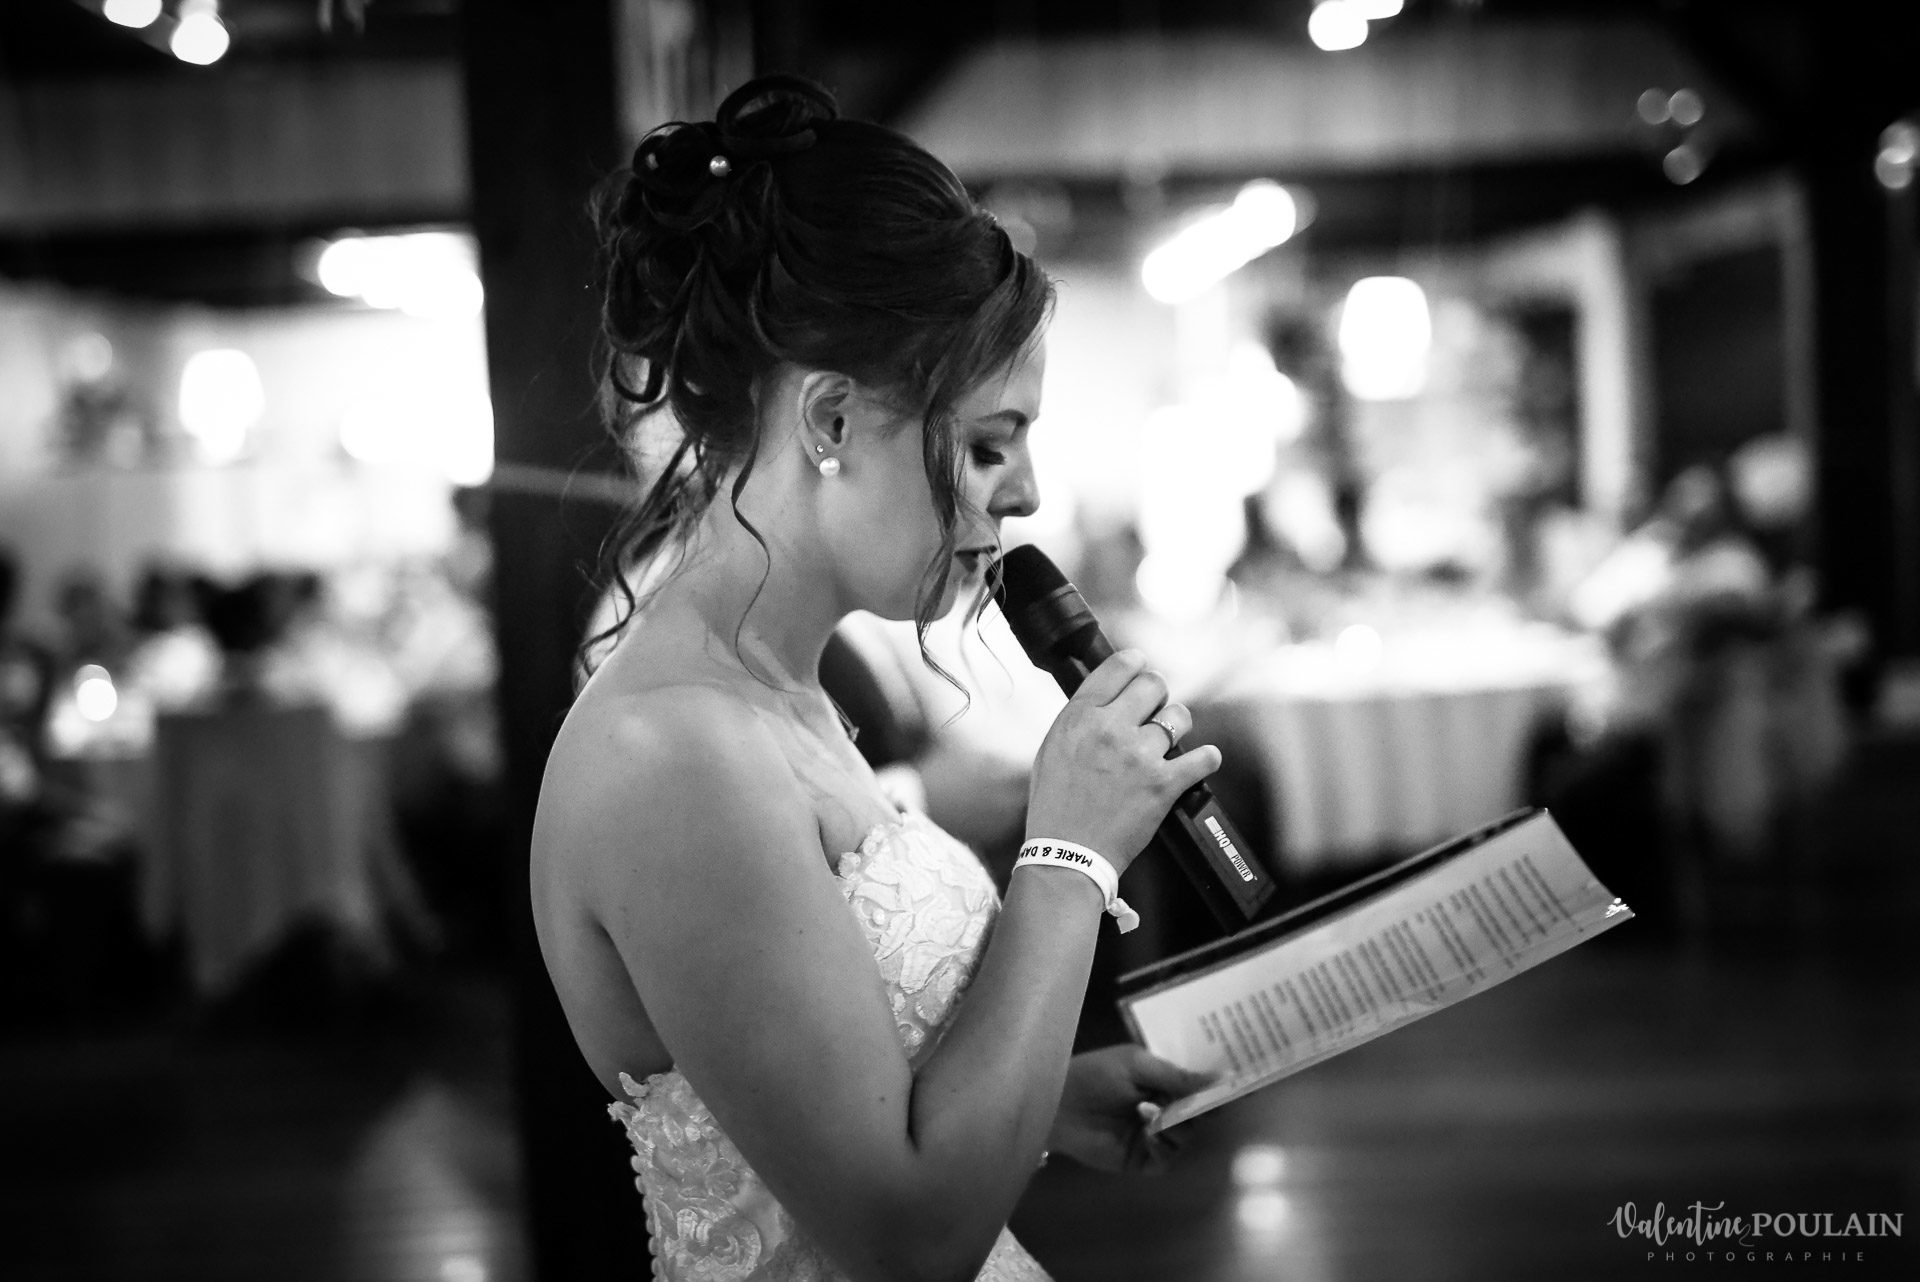 Mariage cool ferme weyerbach - Valentine Poulain discours